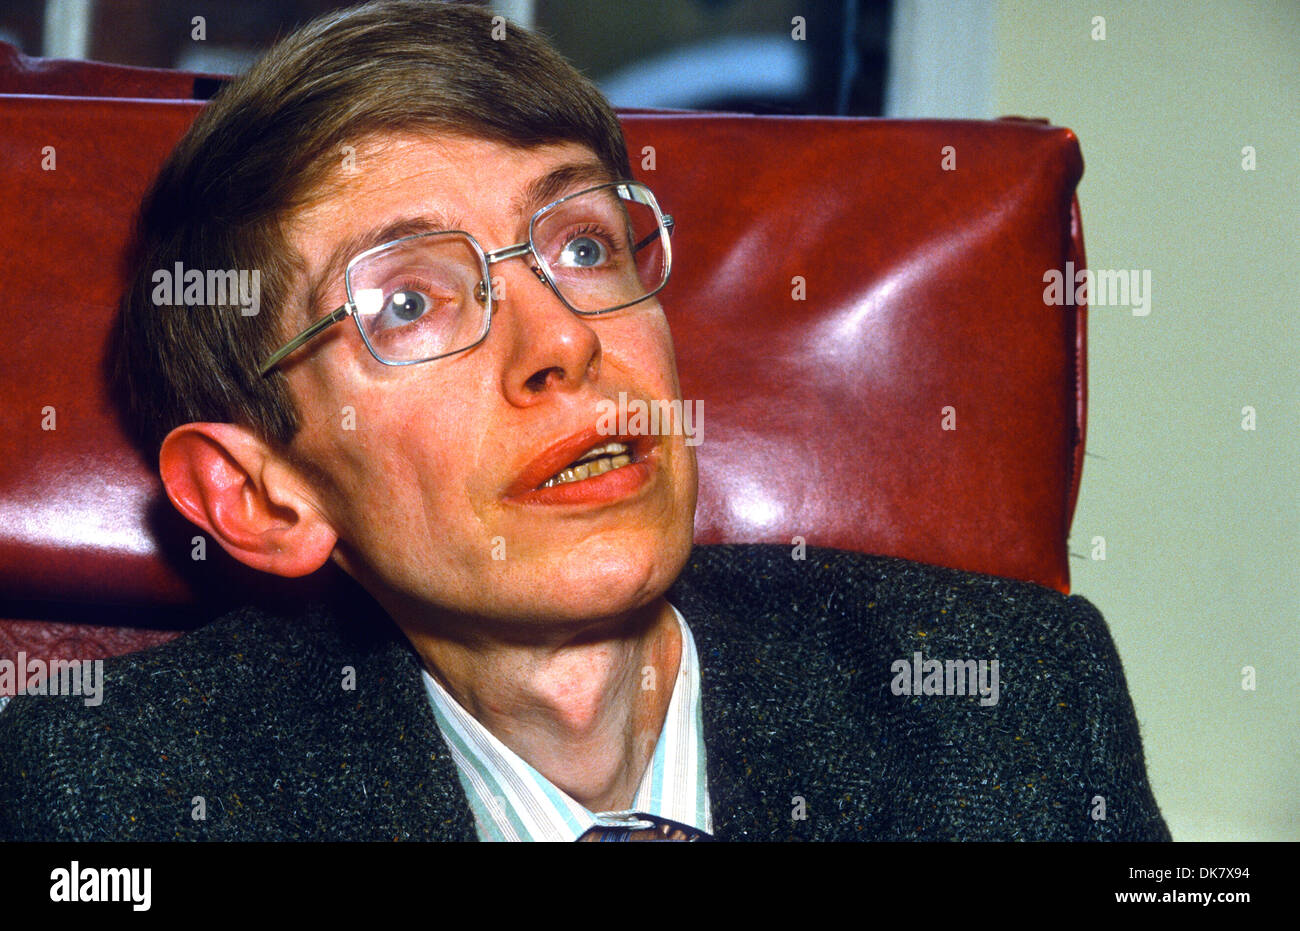 stephen william hawking essay Stephen hawking 1942– (full name stephen william hawking) english cosmologist, mathematician, author, and editor the following entry presents an overview of hawking's career through 1997.